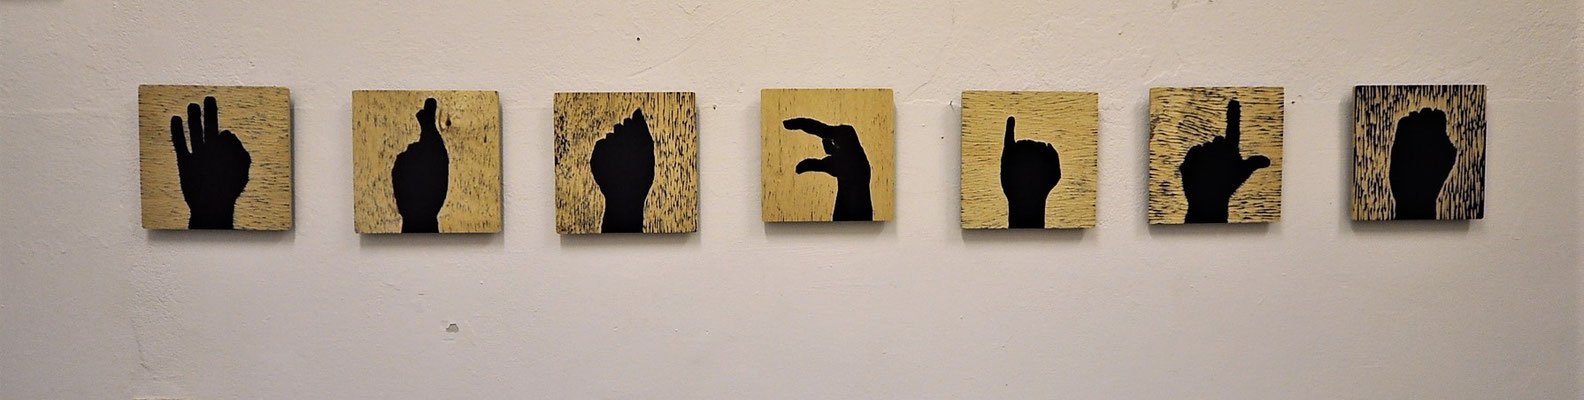 "Work on Wood, International language: "" FRAGILE"", 7 wooden boards, 20x20x0,5 cm"